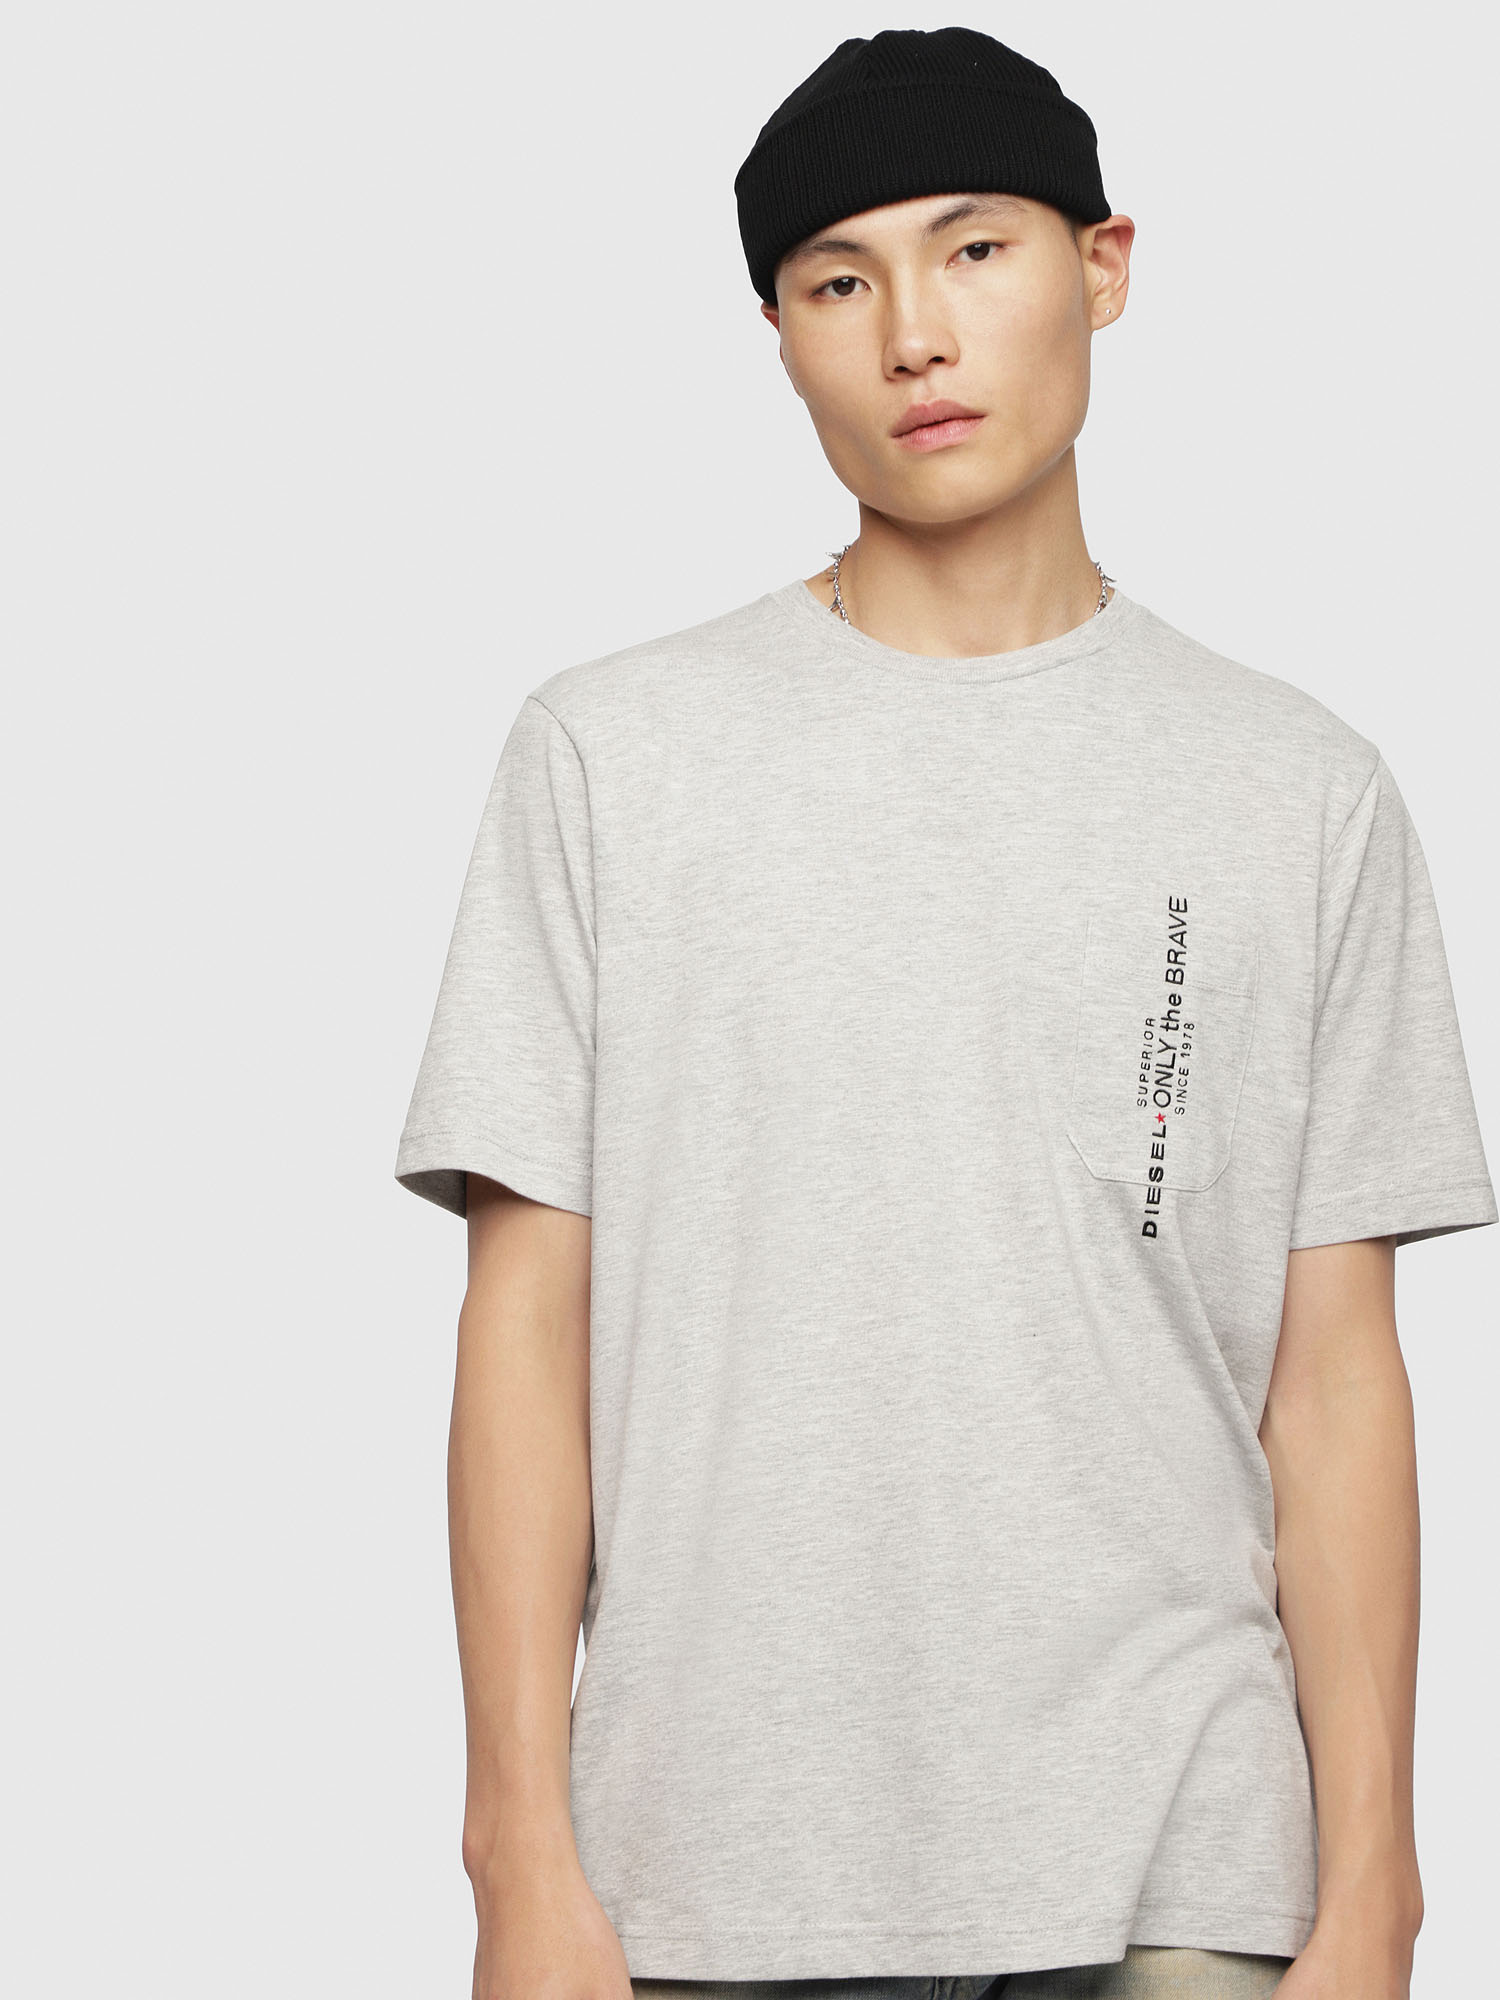 Diesel - T-JUST-POCKET,  - T-Shirts - Image 1